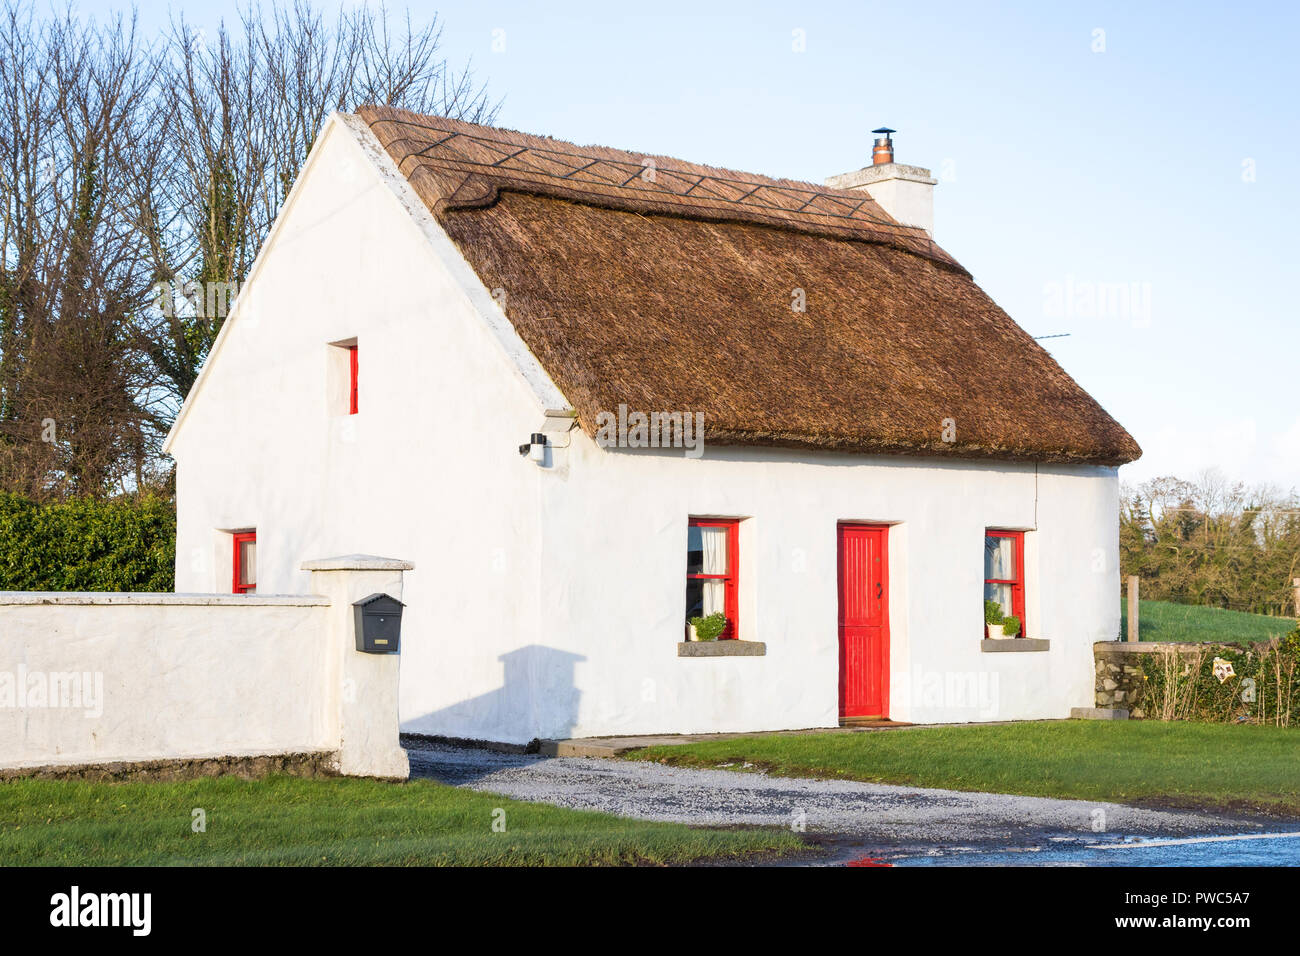 A typical Irish thatched cottage, near the village of Cong, straddling the borders of County Galway and County Mayo, in Ireland. Stock Photo